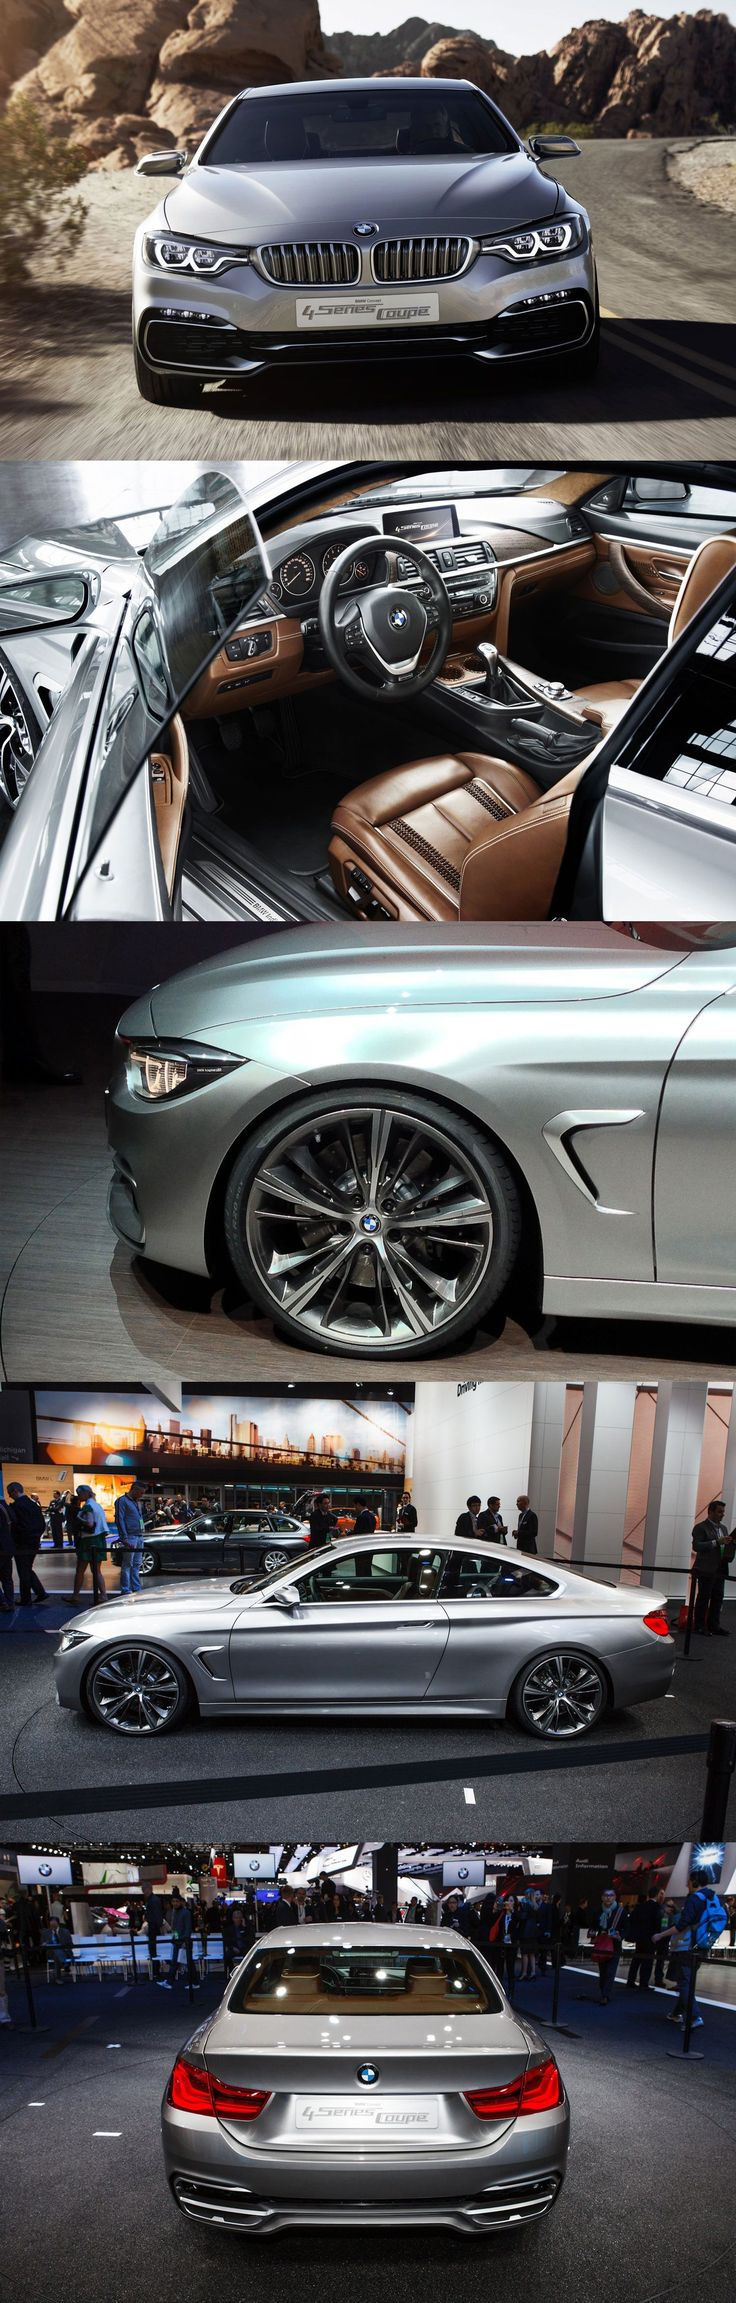 BMW 4-Series Coupe Concept ✦⊱pinterest : @aiyanacooper1 ✦